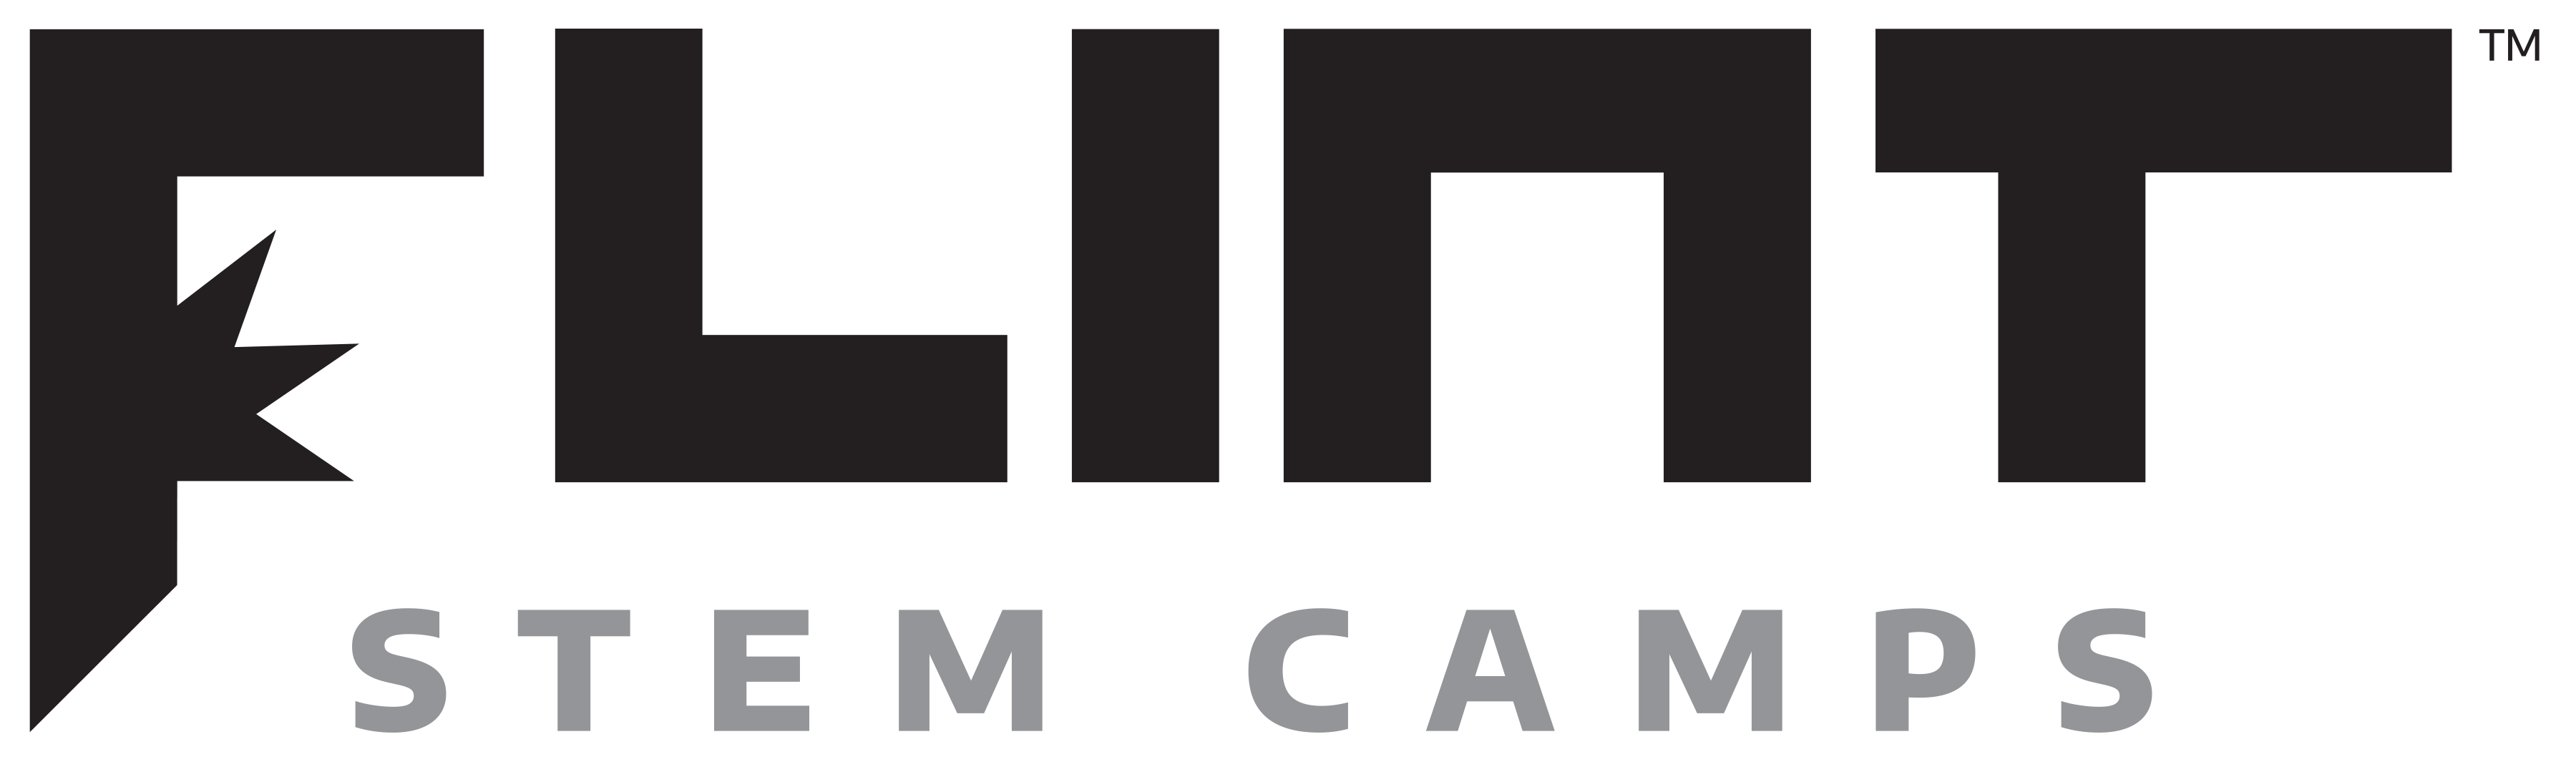 Flint STEM Camps logo